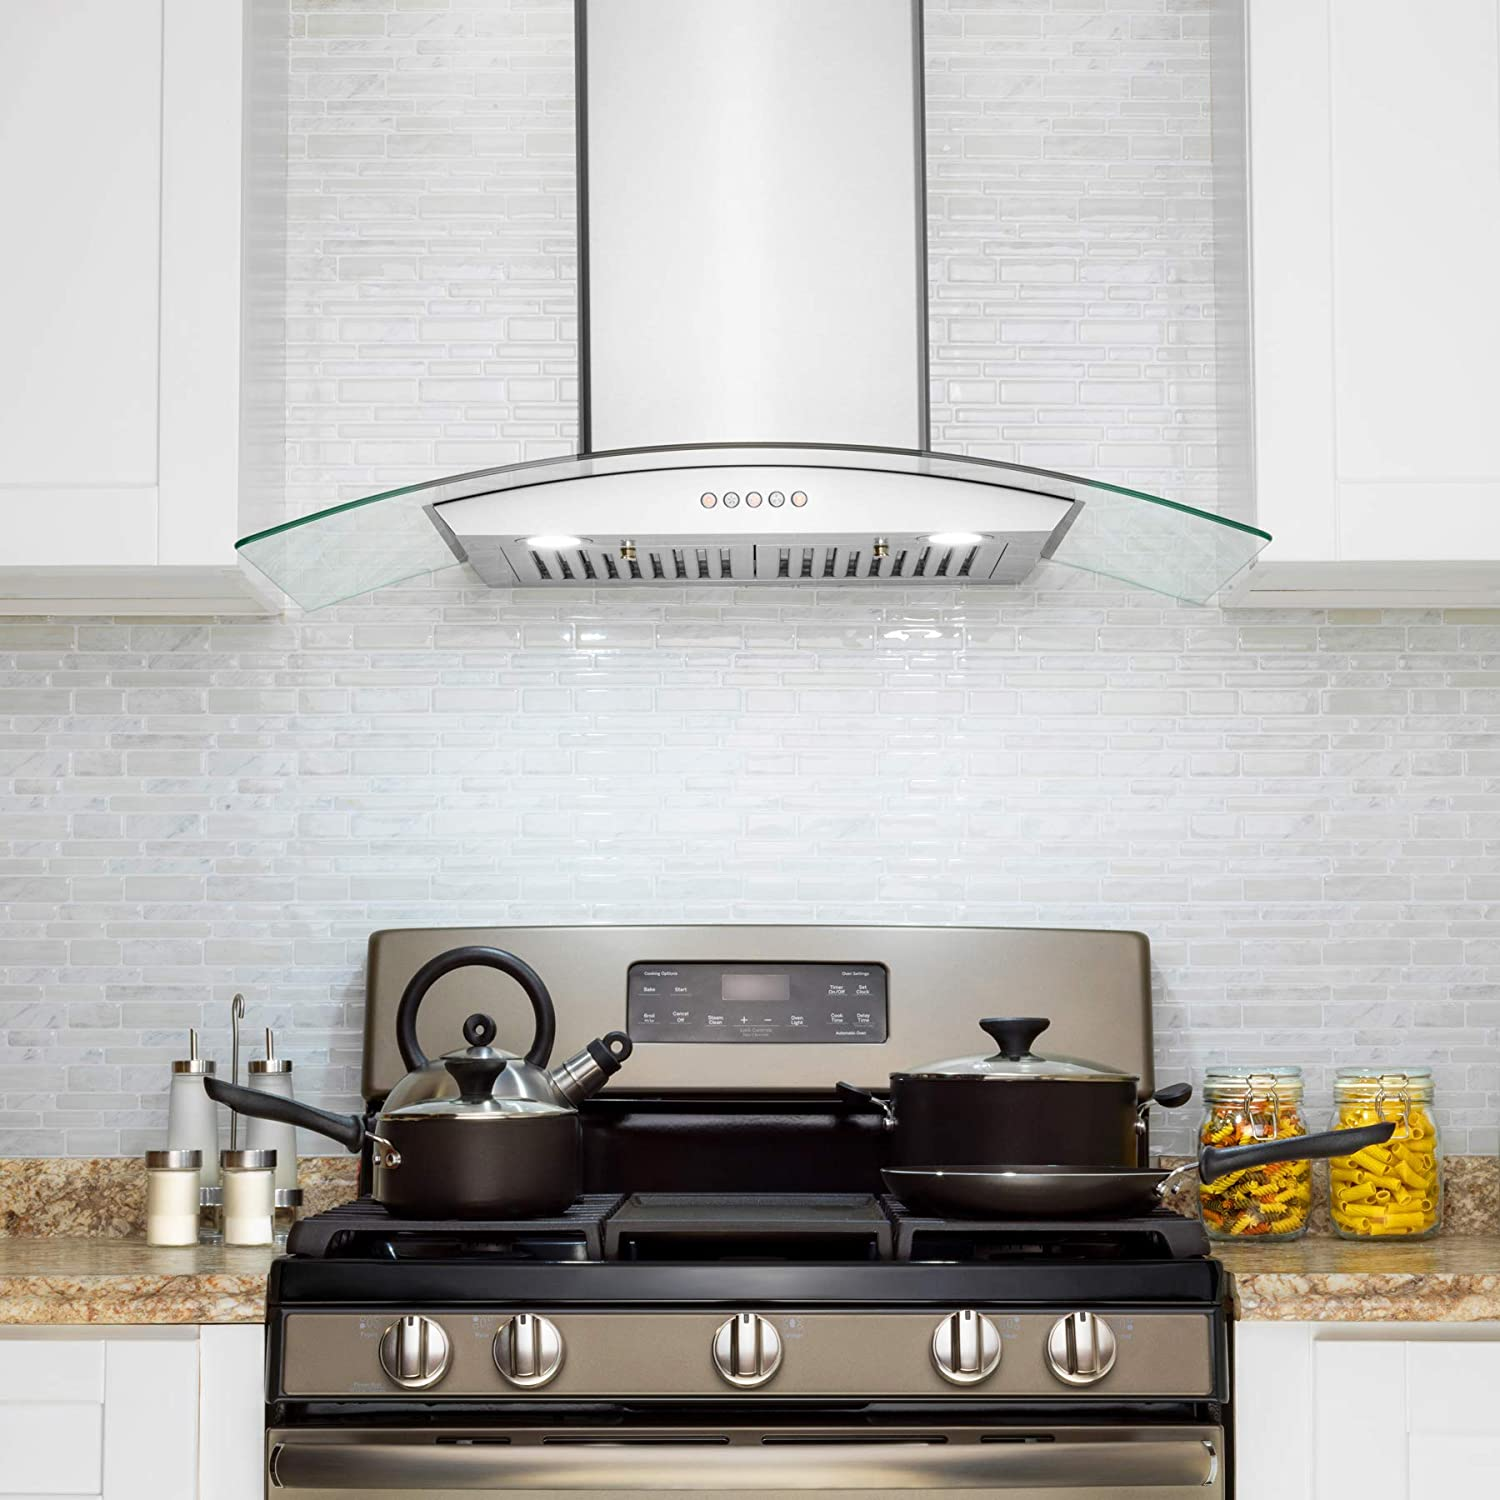 Golden Vantage Wall Mount Range Hood 36 Stainless-Steel Glass Hood Fan for Kitchen 3-Speed Quiet Motor Push Control Panel Curve Modern Design Baffle Filter LED Lamps Tempered Glass